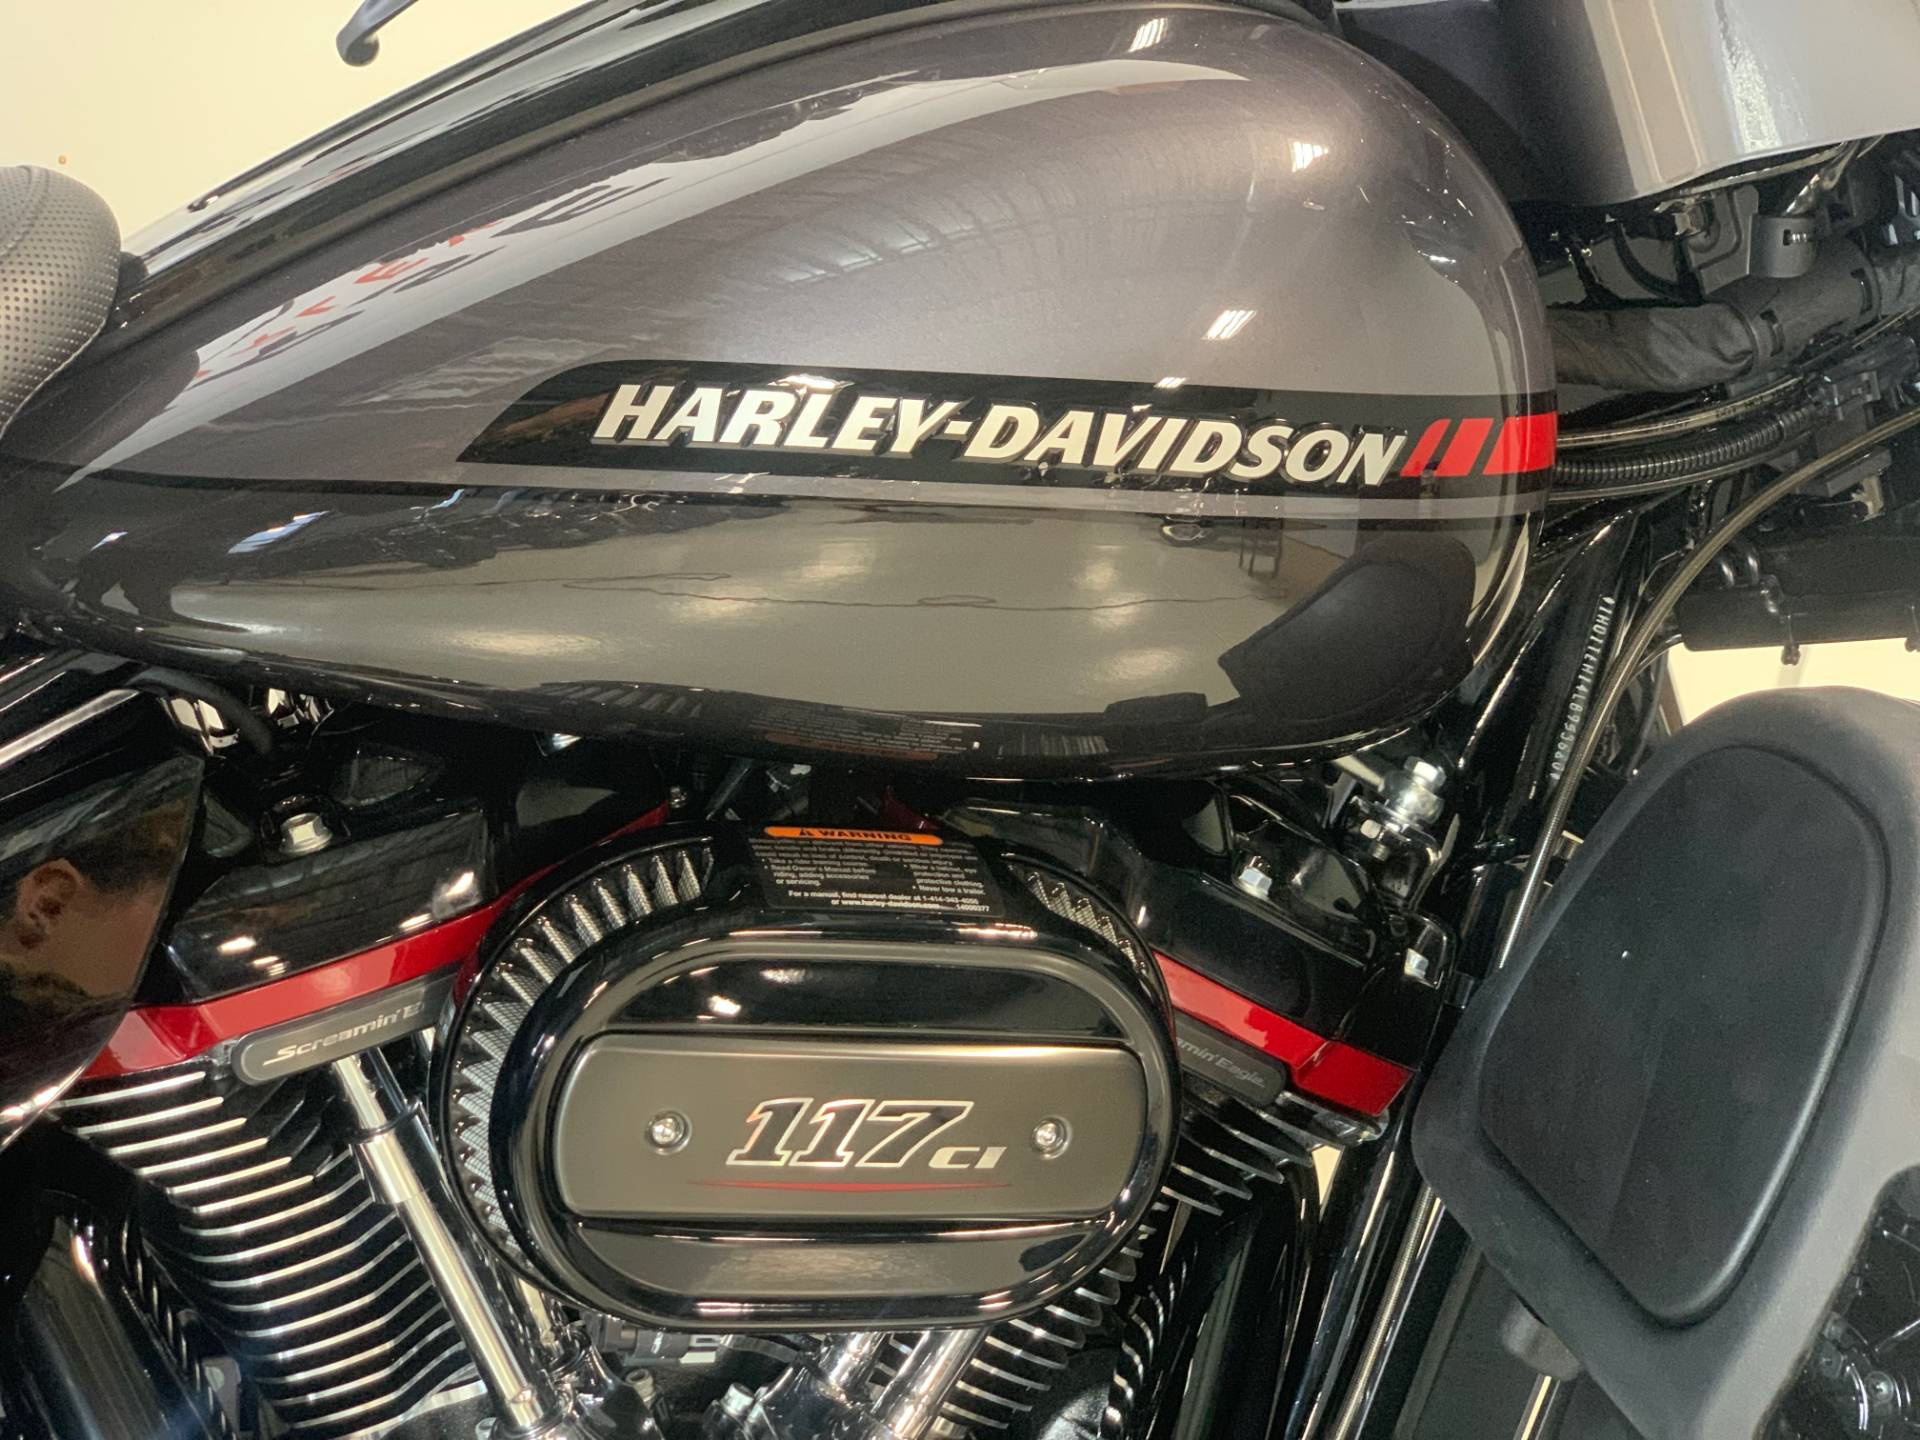 2020 Harley-Davidson CVO Limited in Waterford, Michigan - Photo 2